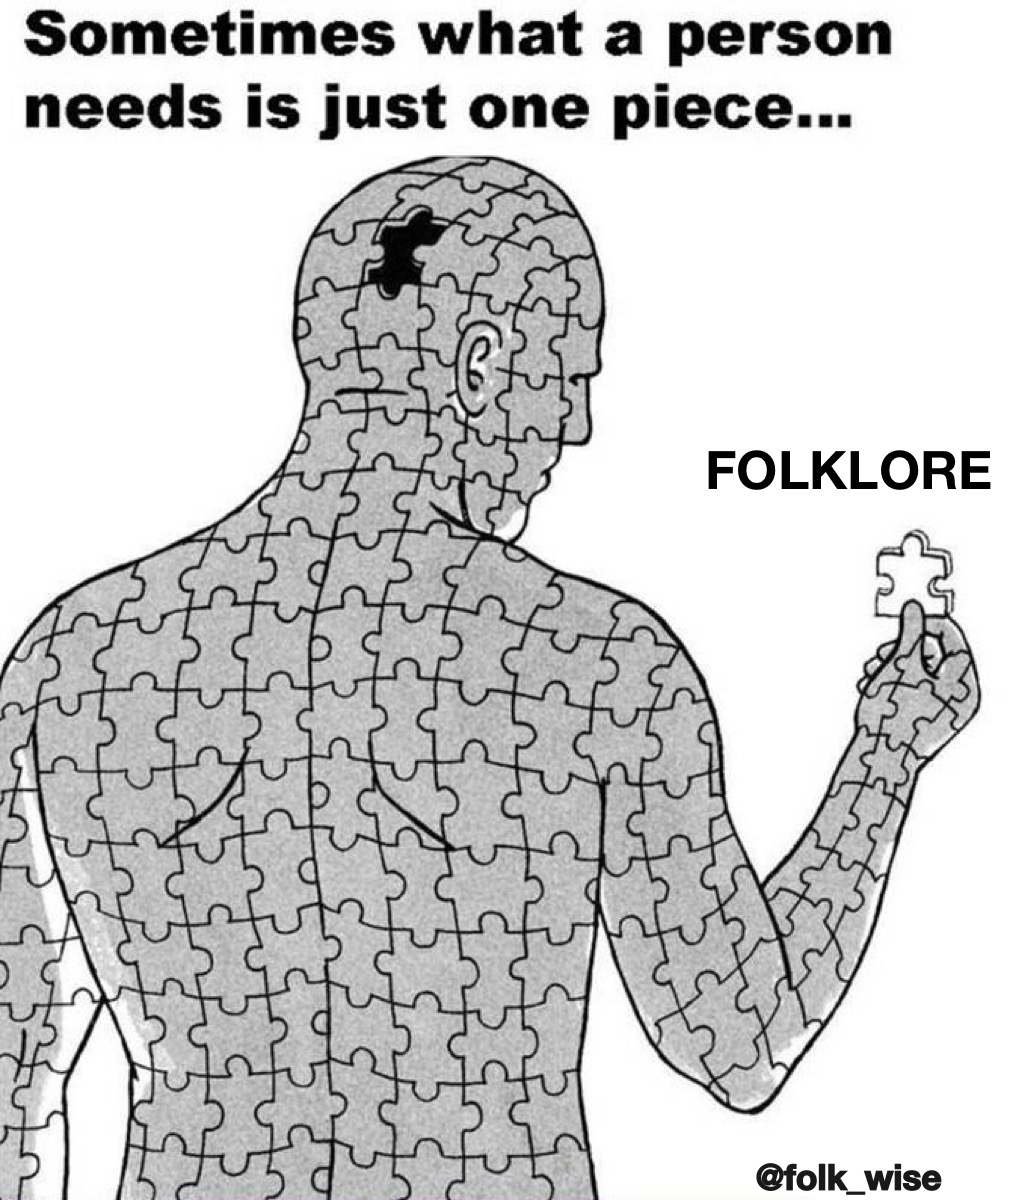 """black and white image of a human made of interlocking puzzle pieces, holding a single missing piece in their hand. Text reads: """"Sometimes what a person needs is one piece… Folklore"""""""